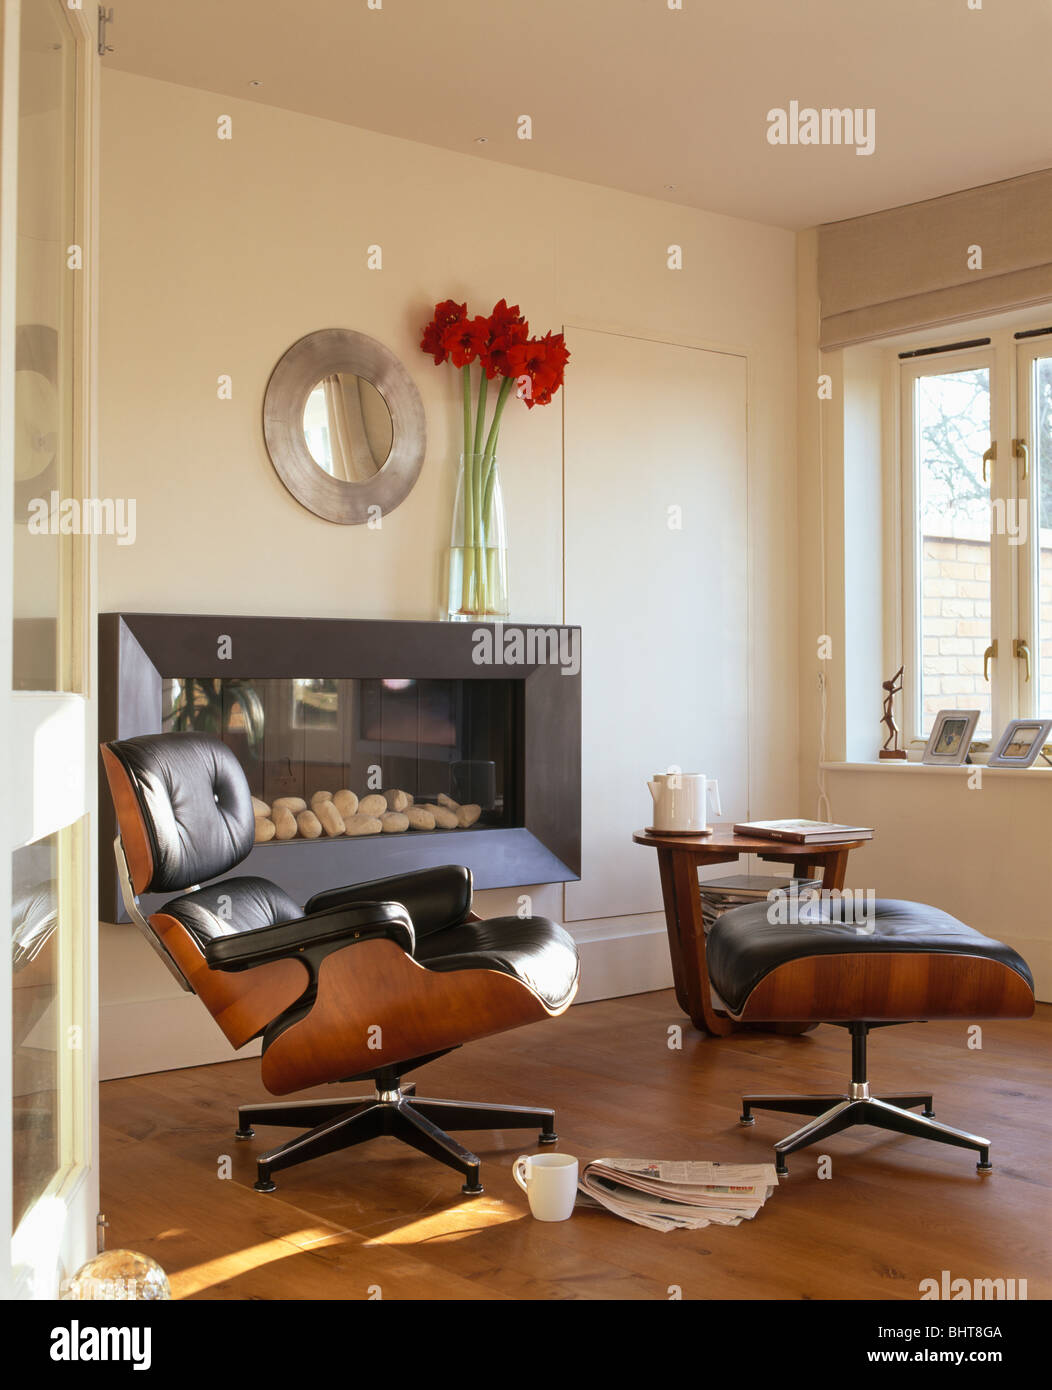 black leather charles eames armchair and stool in front of modern